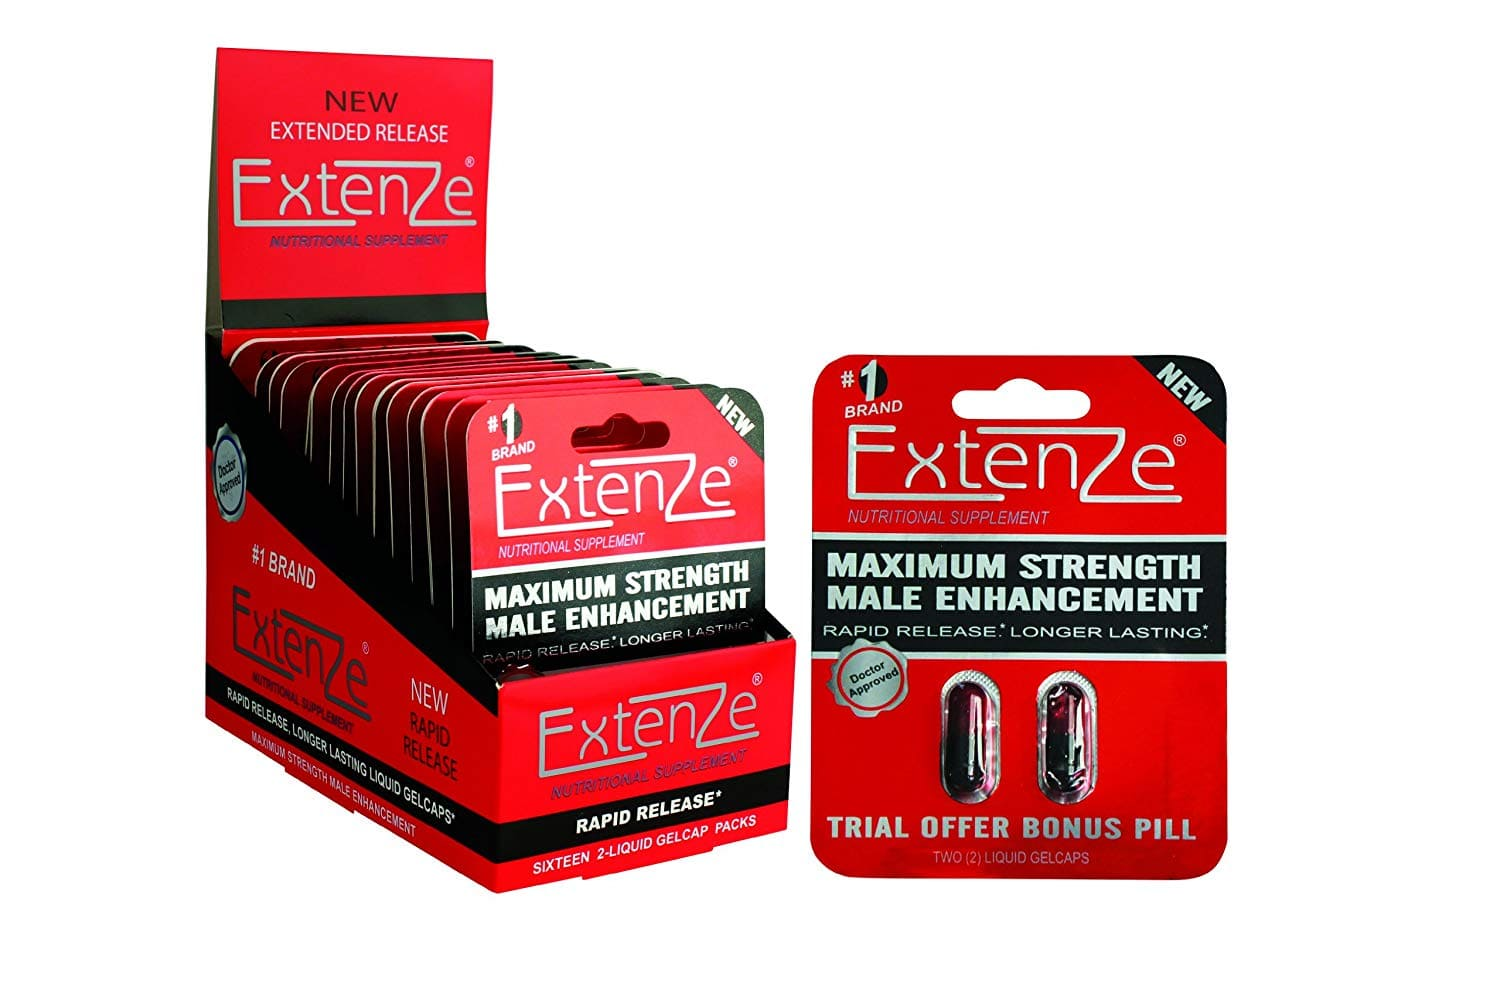 official Extenze